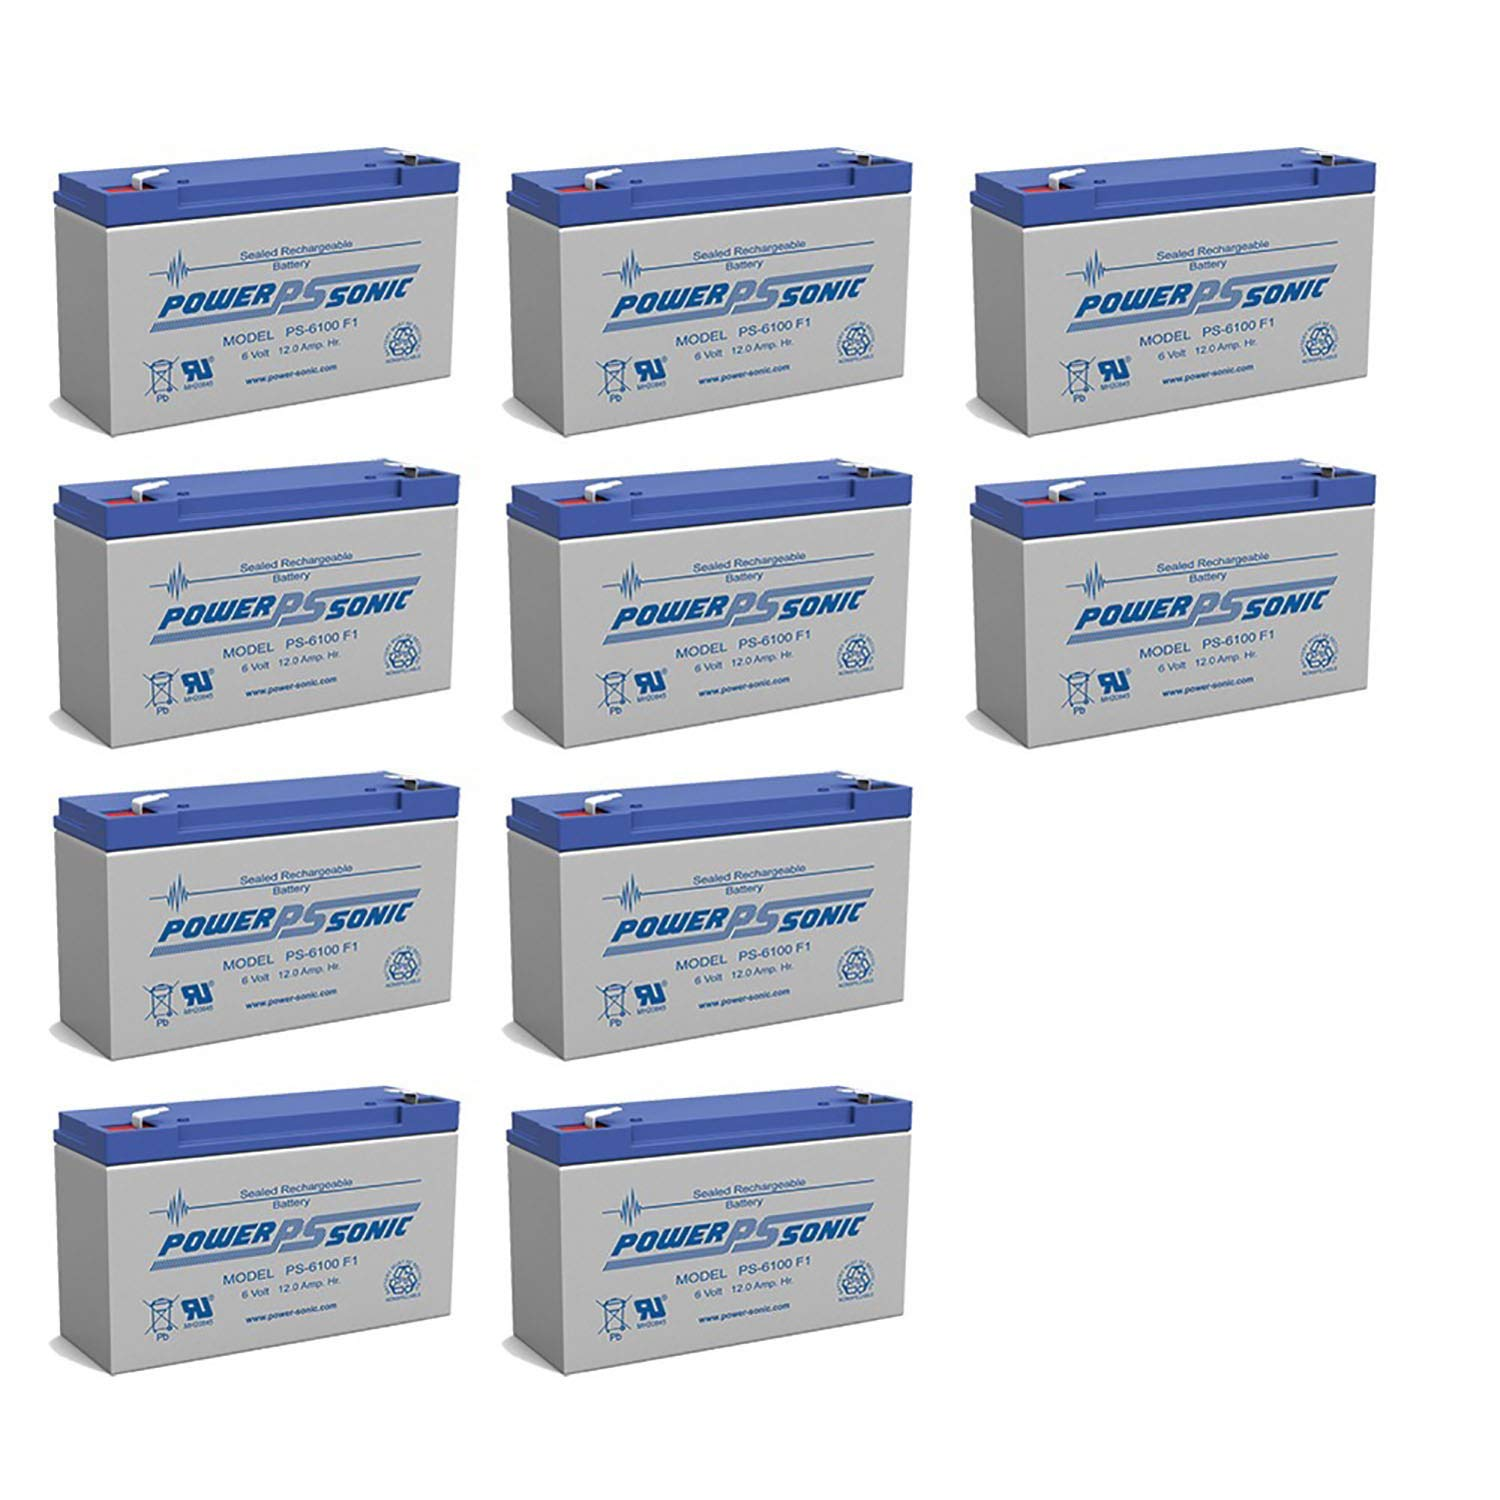 Power Sonic PS-6100 6V 12AH DEEP-Cycle Rechargeable SLA Energy Storage Battery - 10 Pack